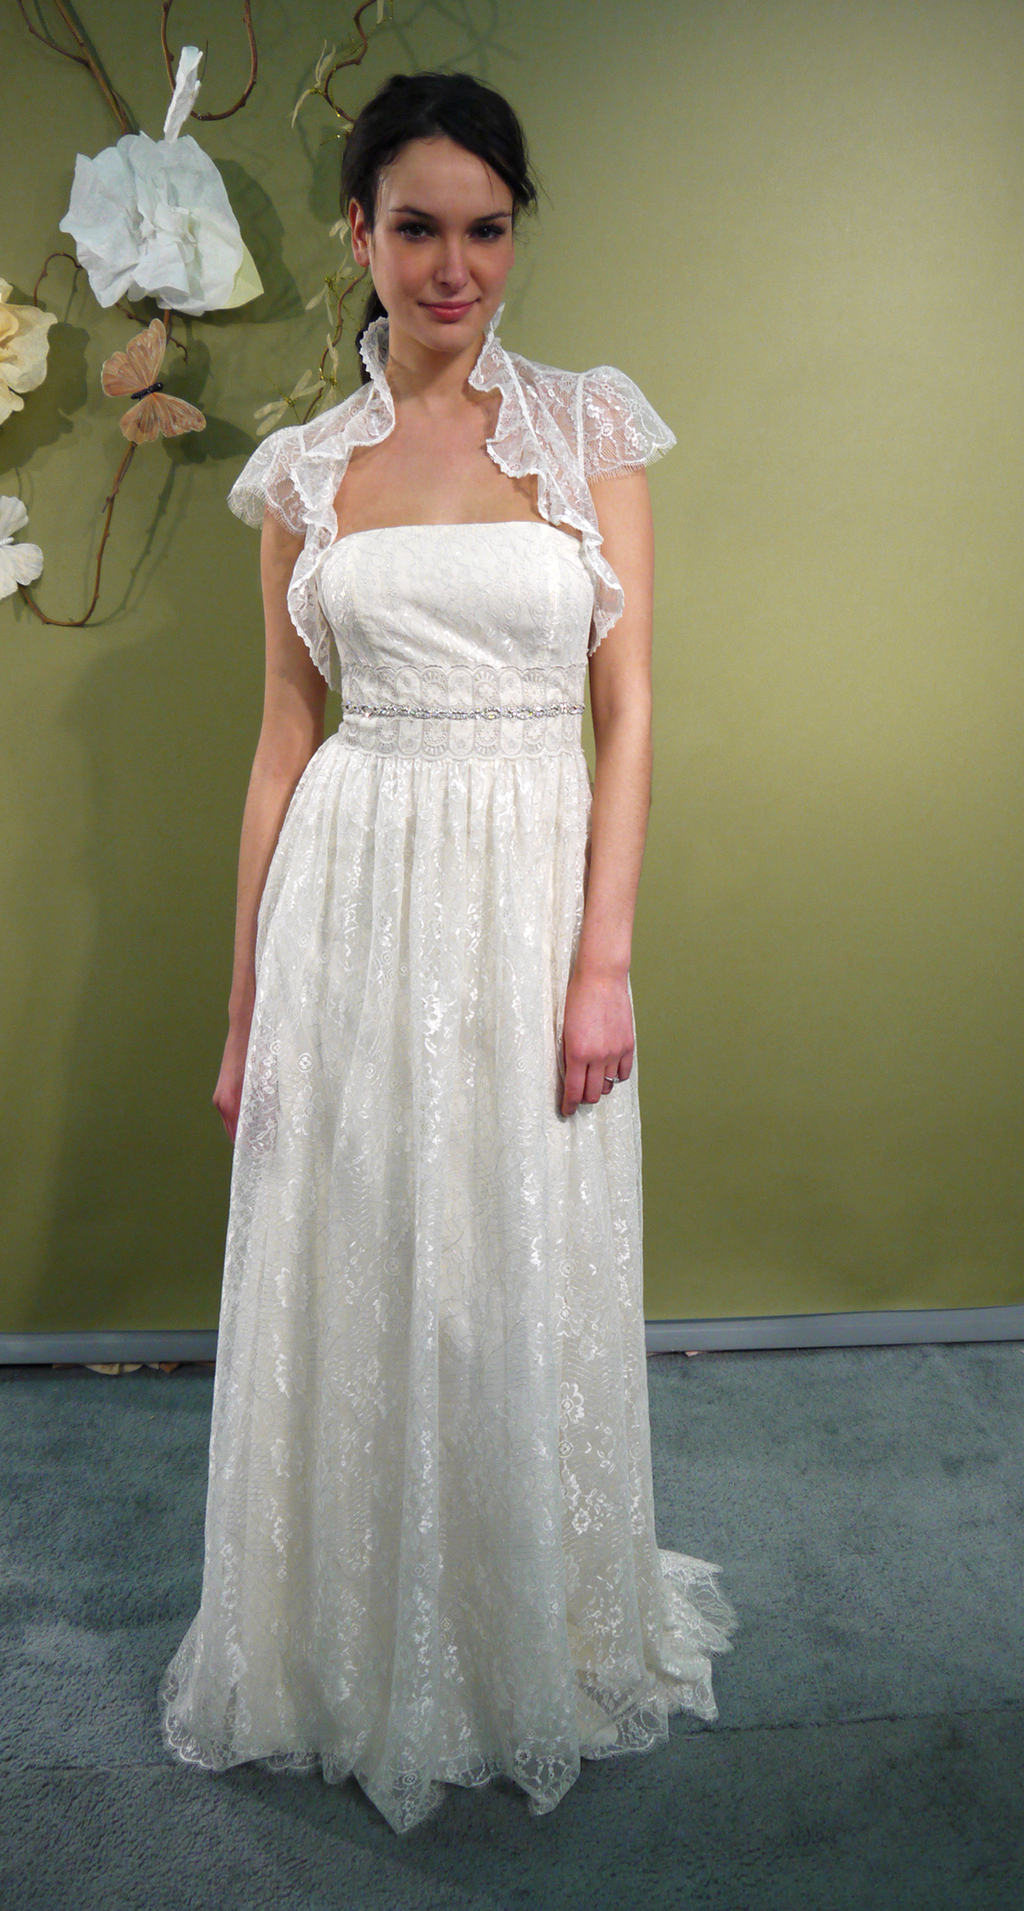 Fall-2011-wedding-dresses-norah-strapless-empire-wedding-dress-beaded-bridal-belt-claire-pettibone-lace-bolero-cap-sleeves.full